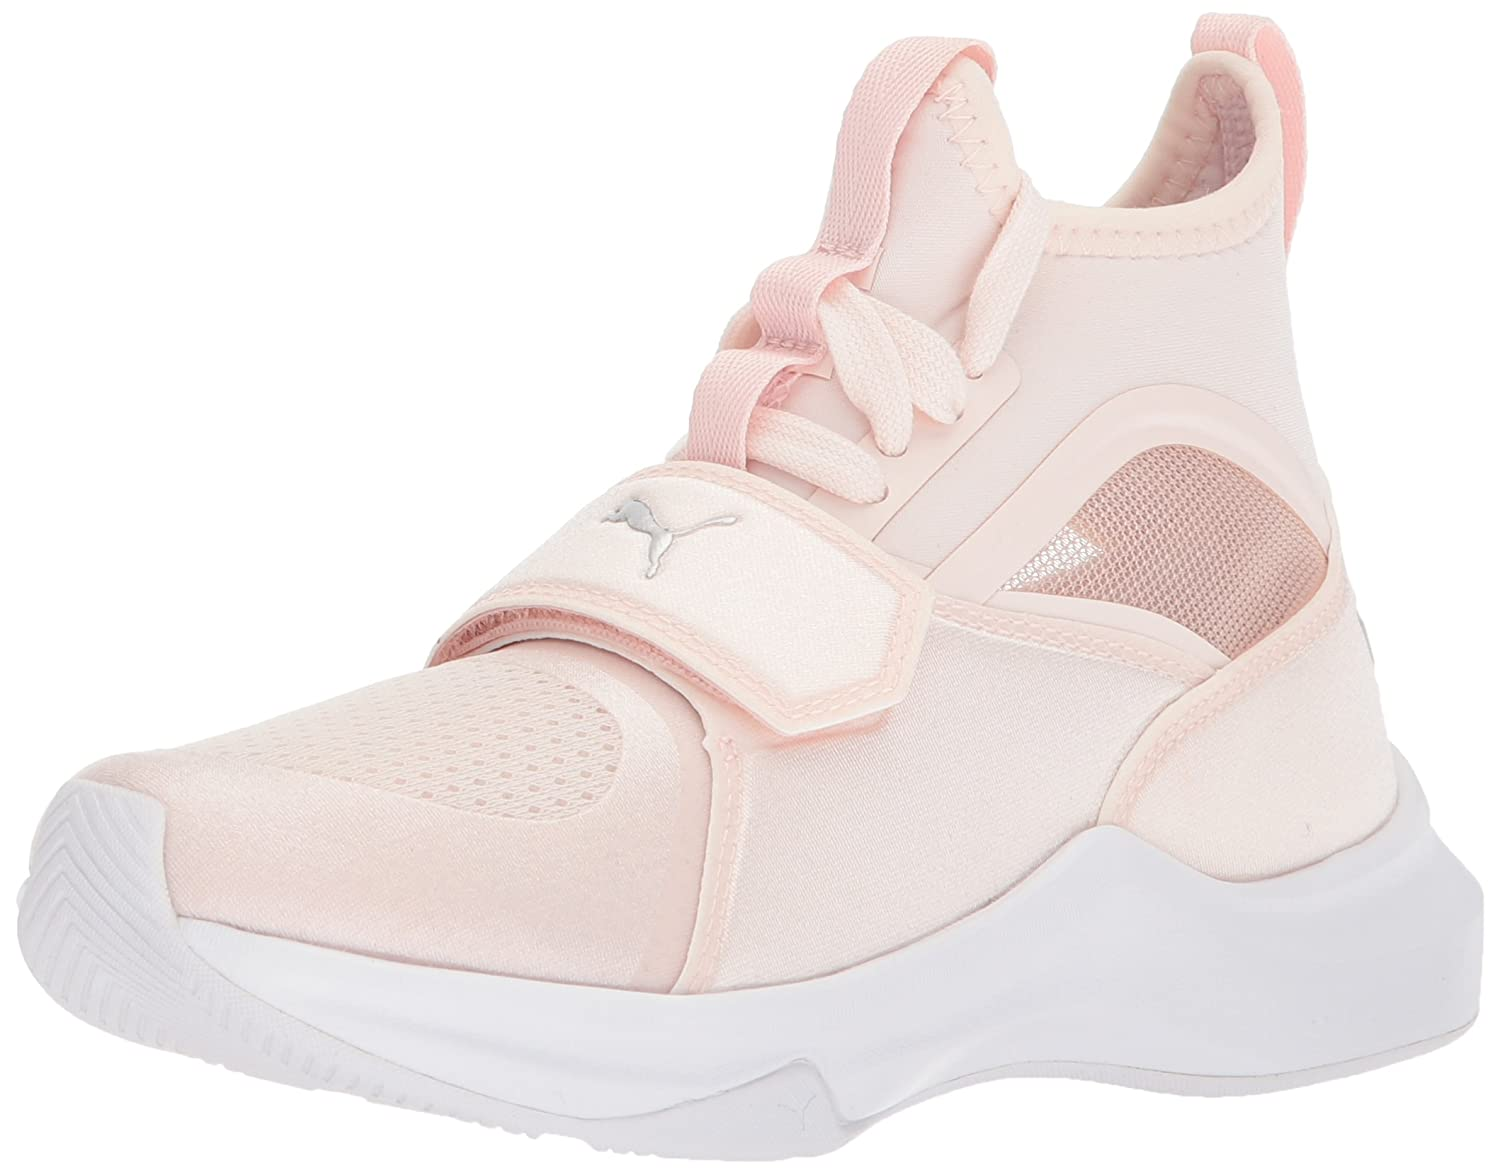 Phenom wns | Lovely Sneakers for her in 2019 | Puma sneakers